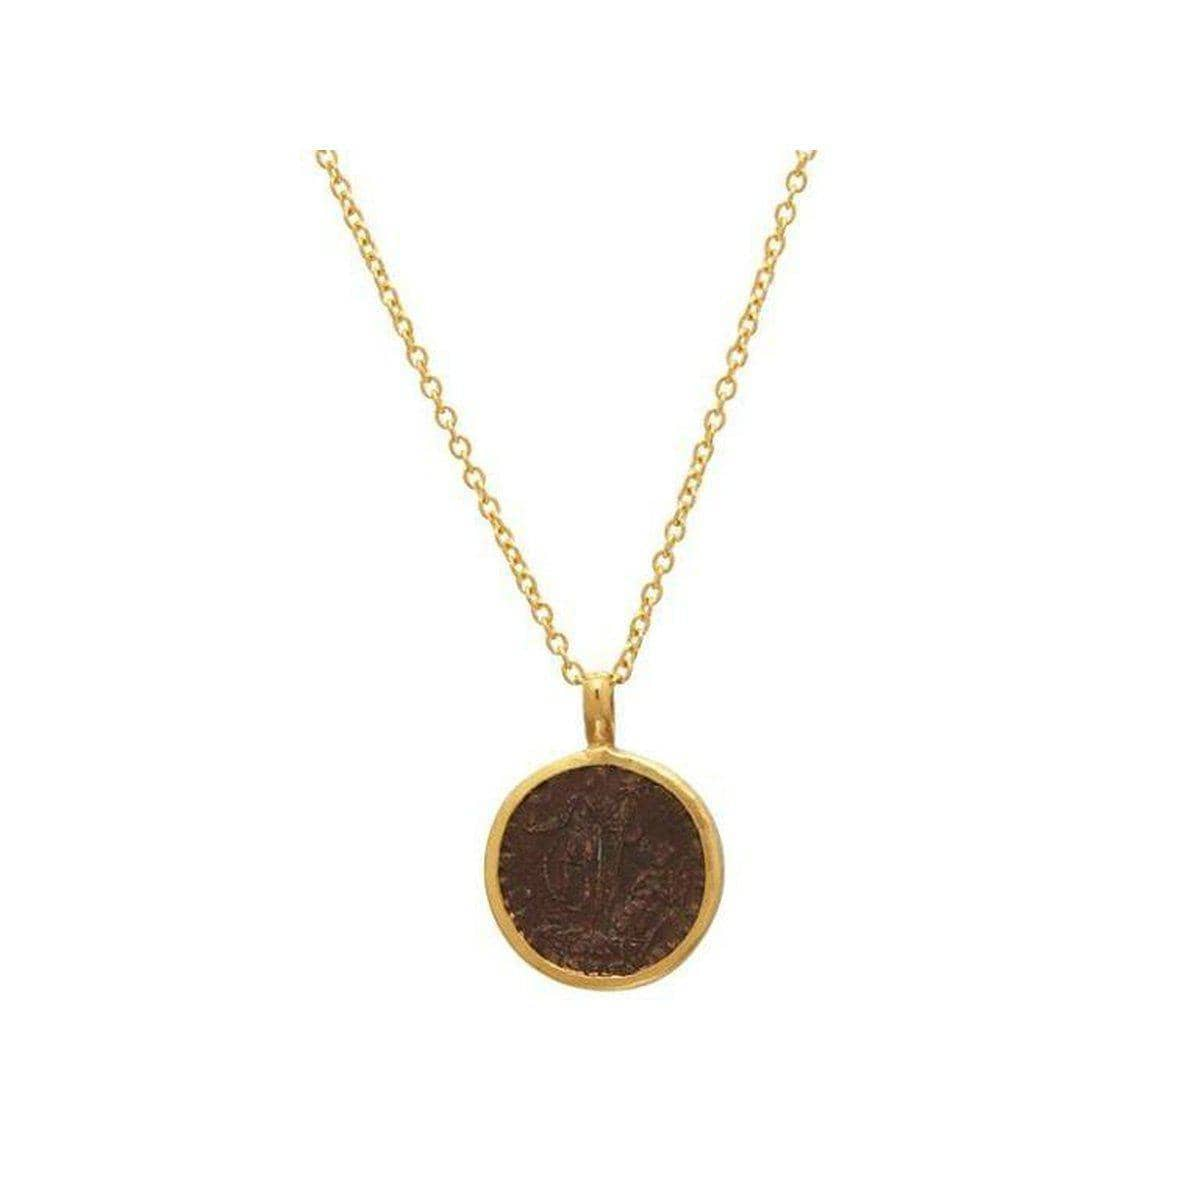 Antiquities 24K Gold Coin Necklace - N-U25839-CN